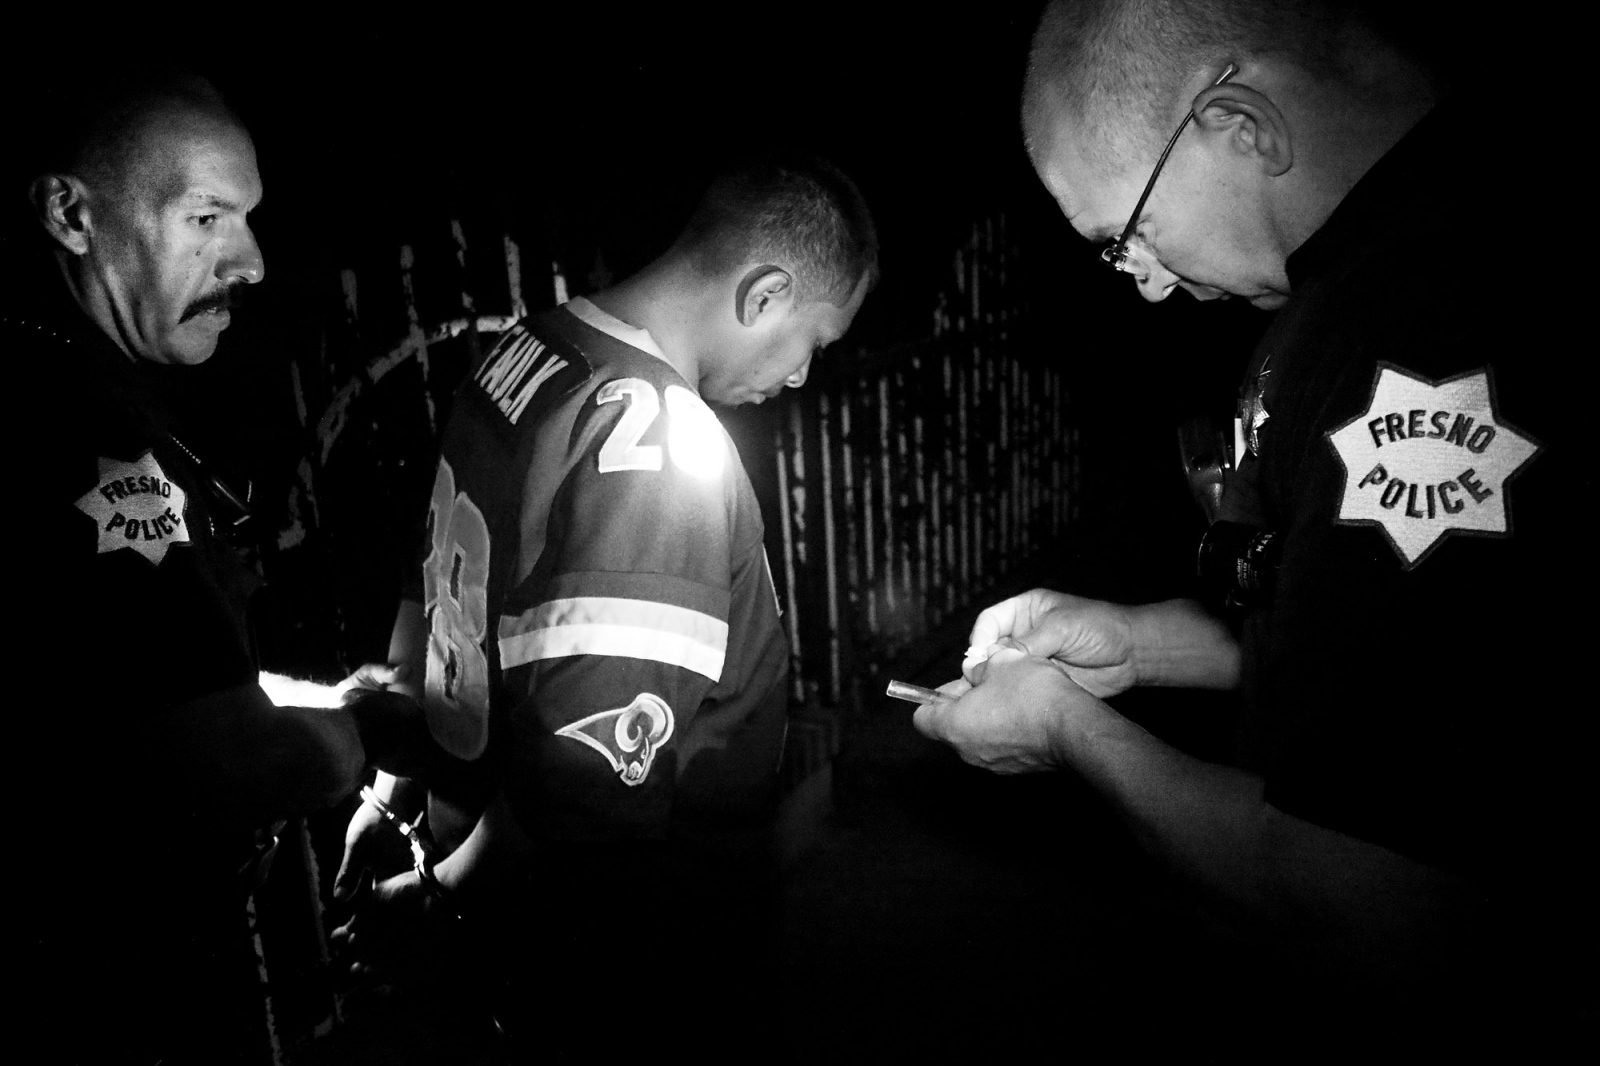 Fresno, California 2013 Two police officers arrest a man of about thirty years old accused of raping his ex-girlfriend. During the house search police find a glass pipe used to smoke crystals and a small dose of meth. Losing ones' sexual inhibitions is one of the drugs most common side effects.